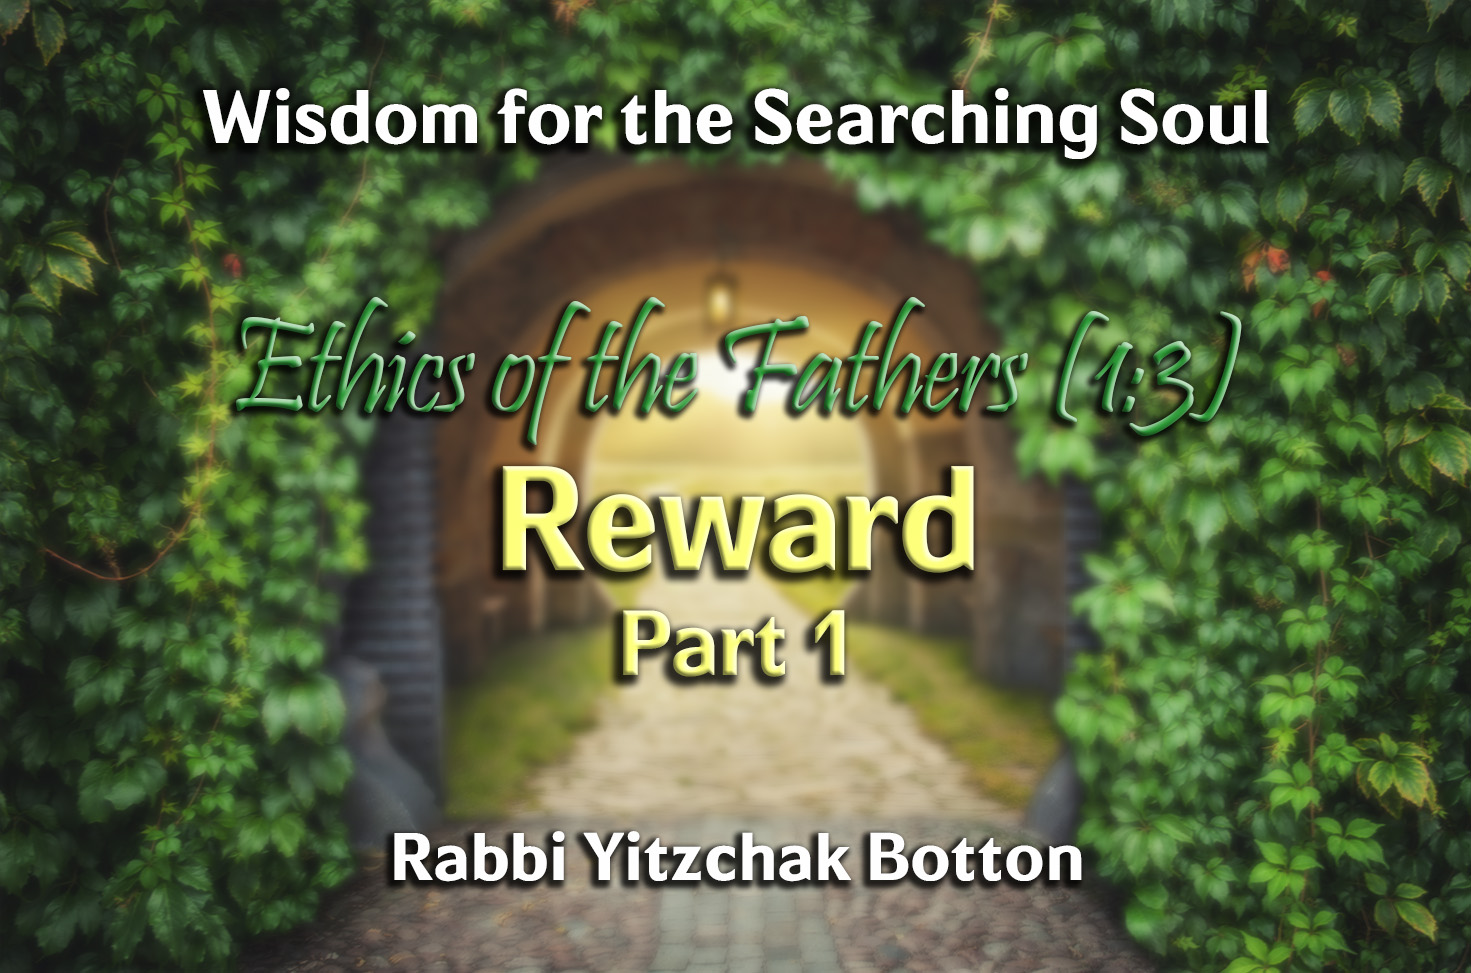 Photo of Reward – Part 1 – Ethics of the Fathers (1:3)